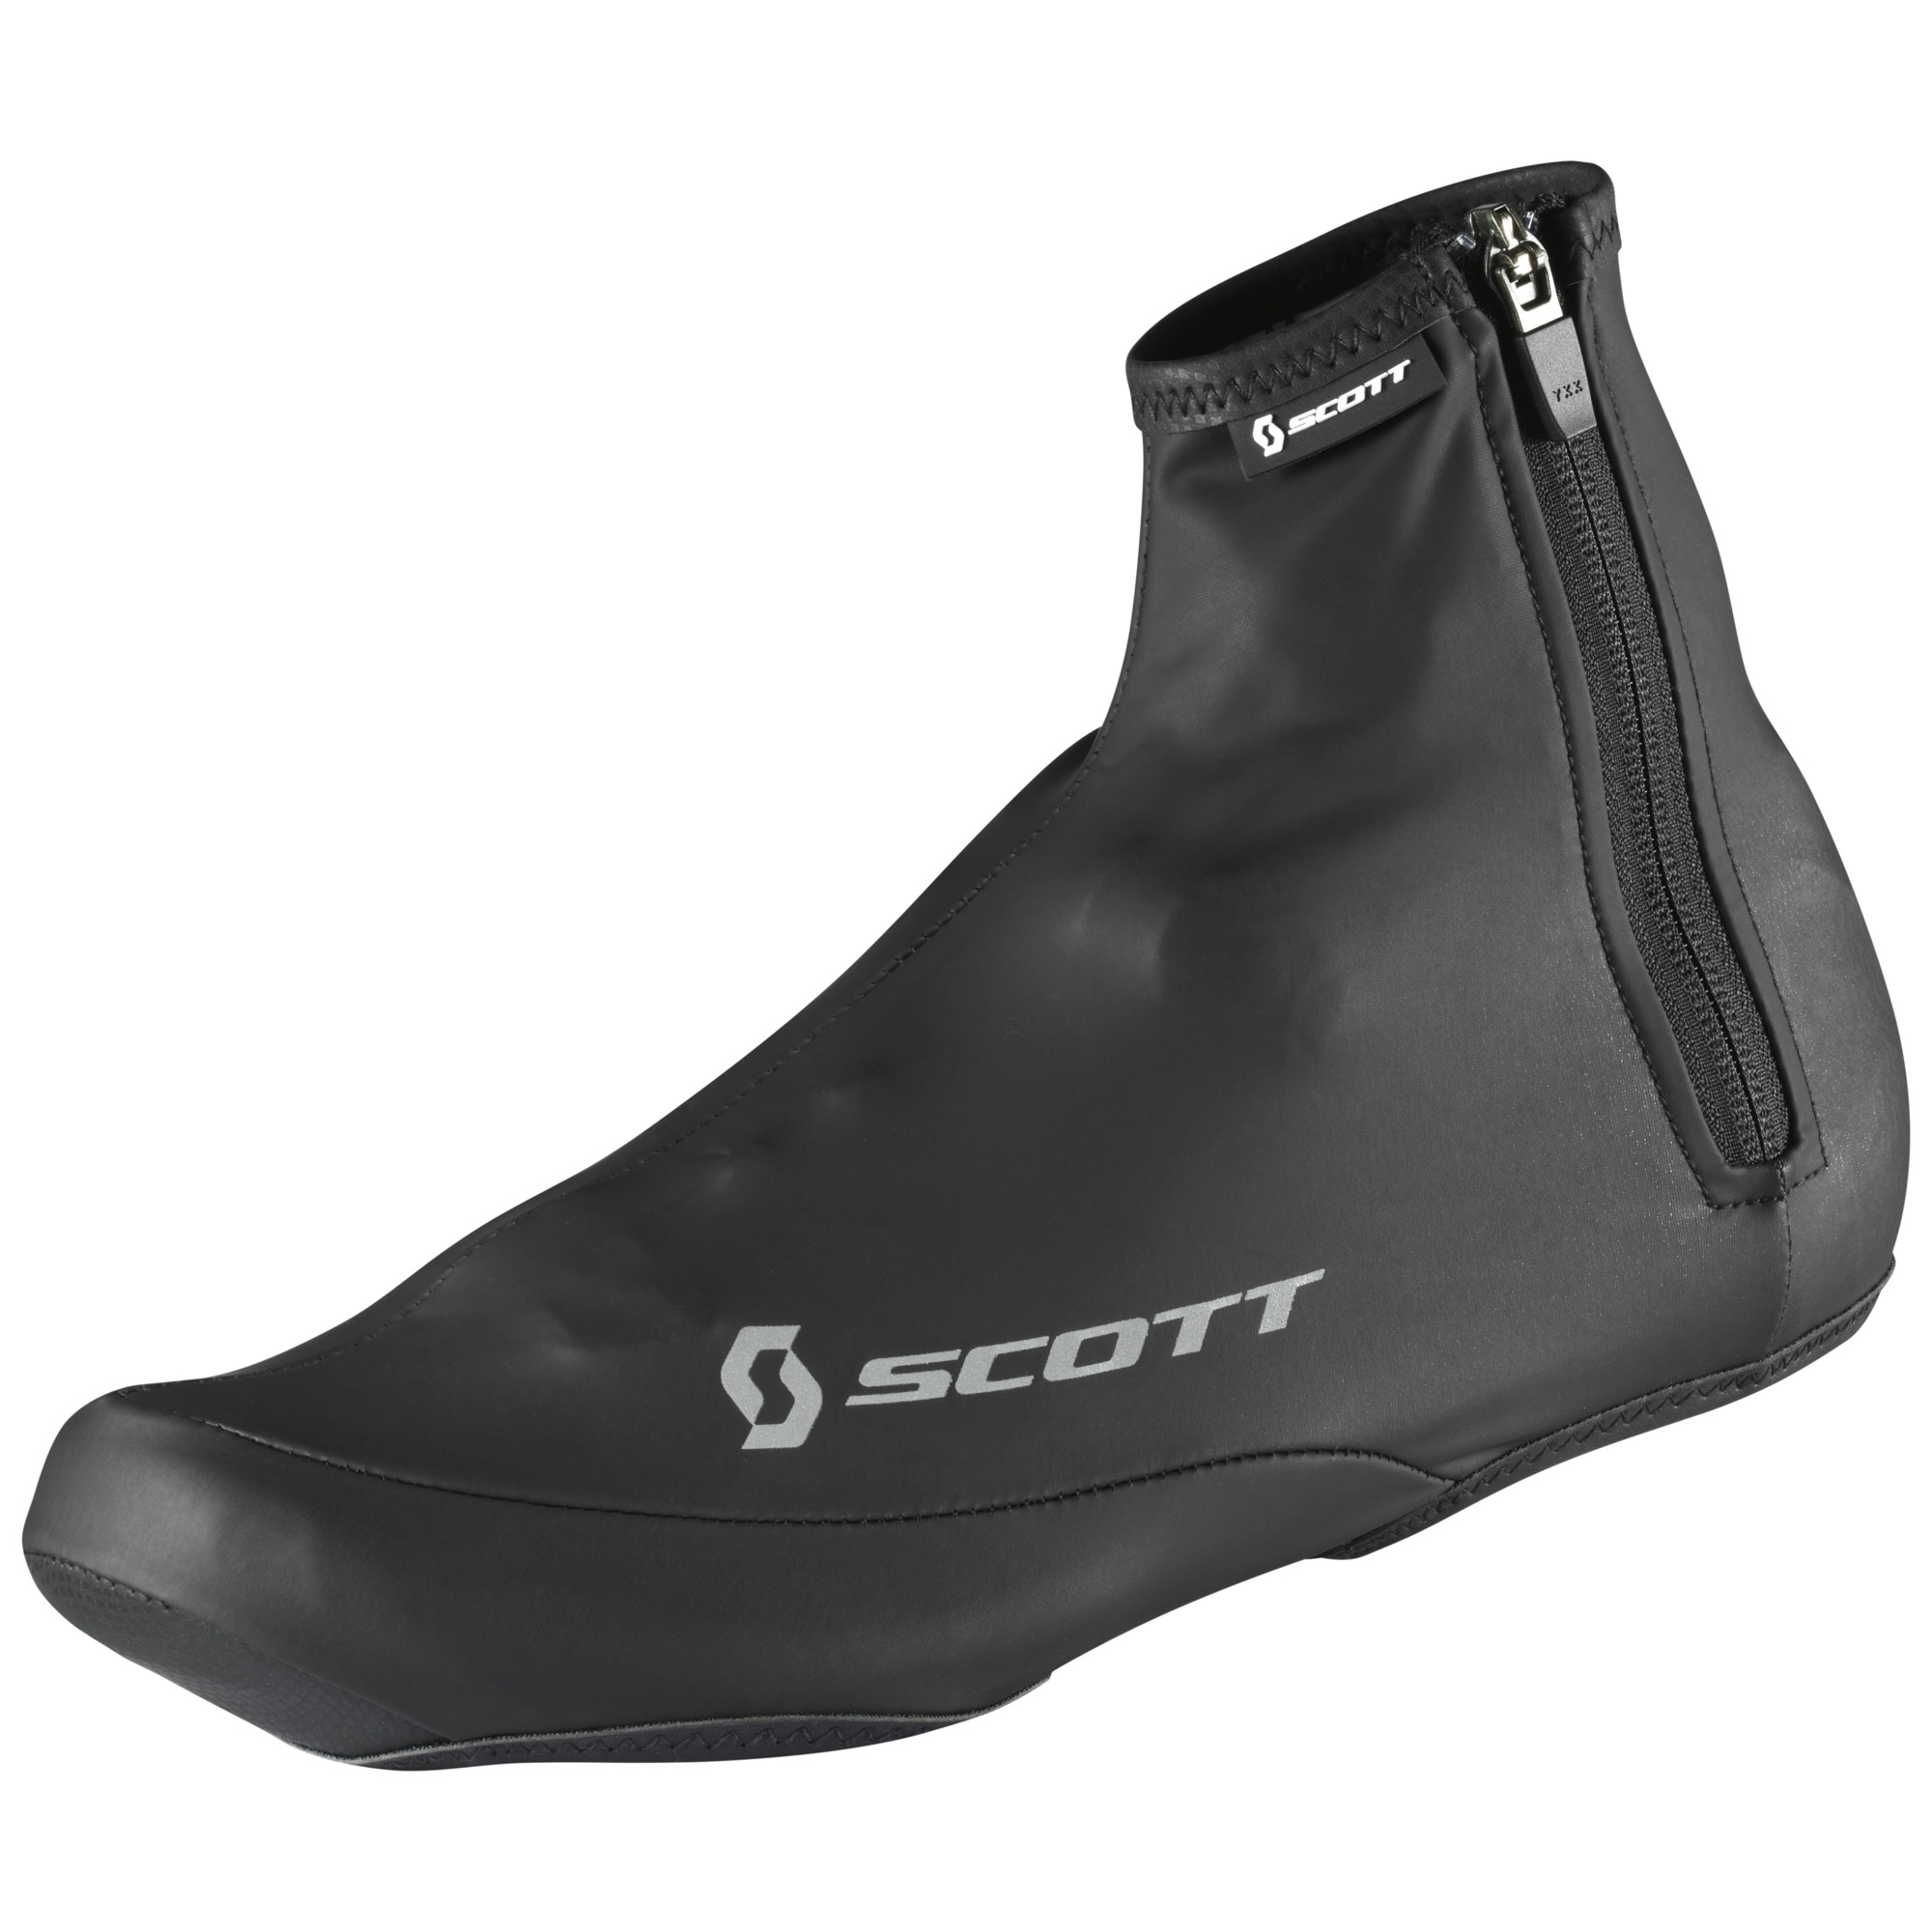 SCOTT AS 20 Shoecover